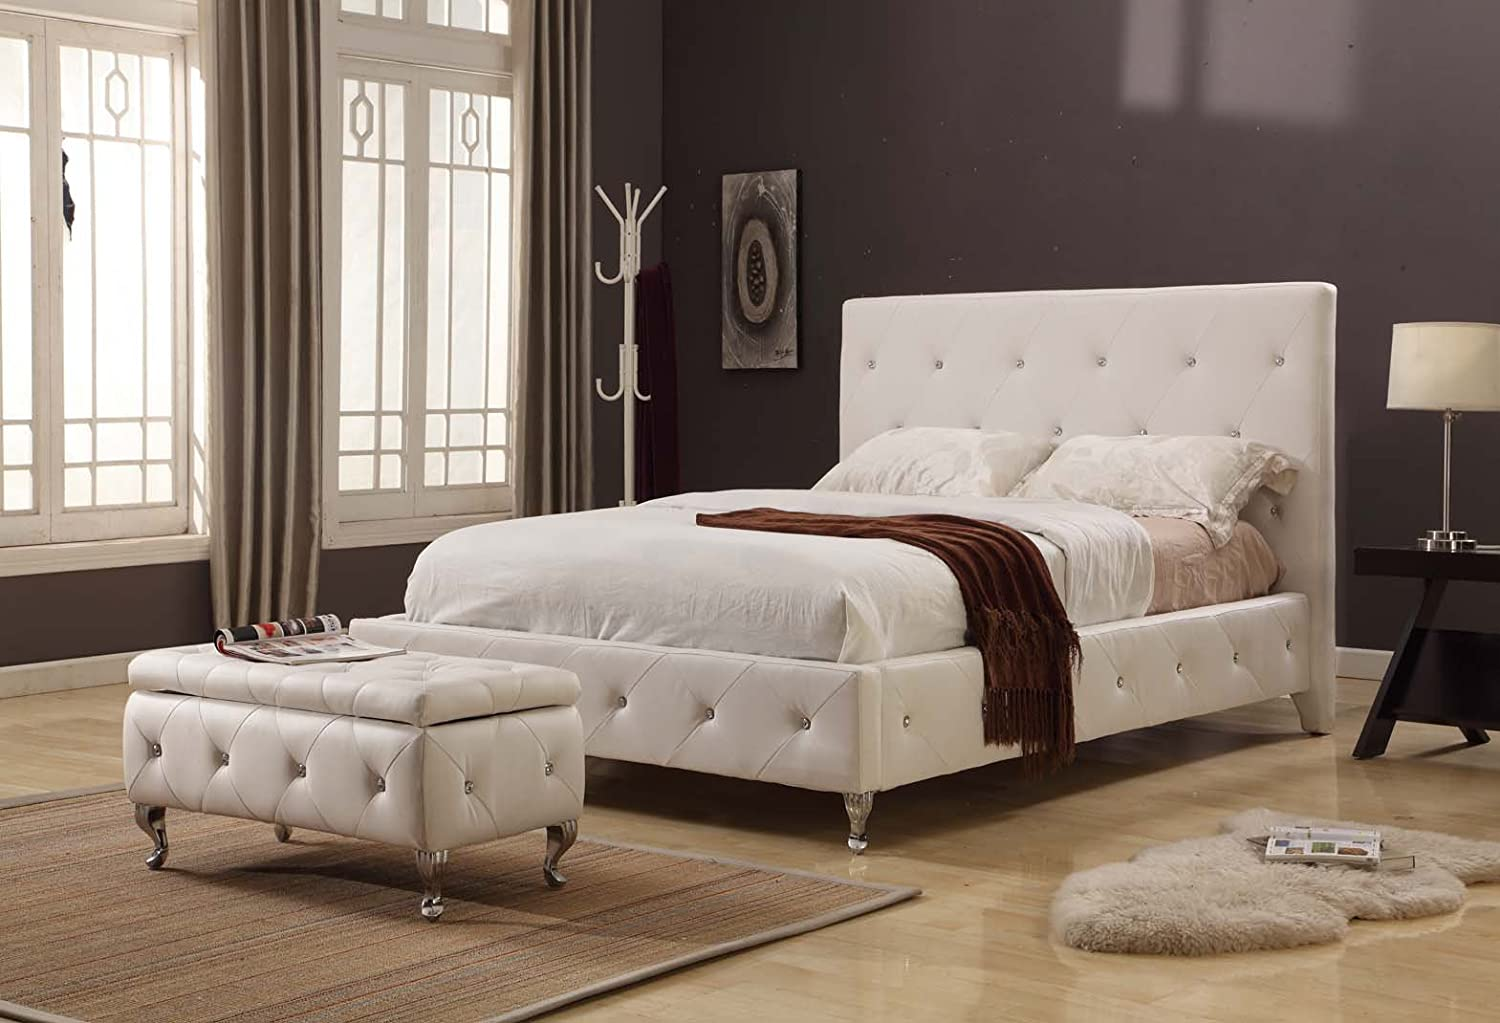 White Tufted Design Leather Look Queen Size Upholstered